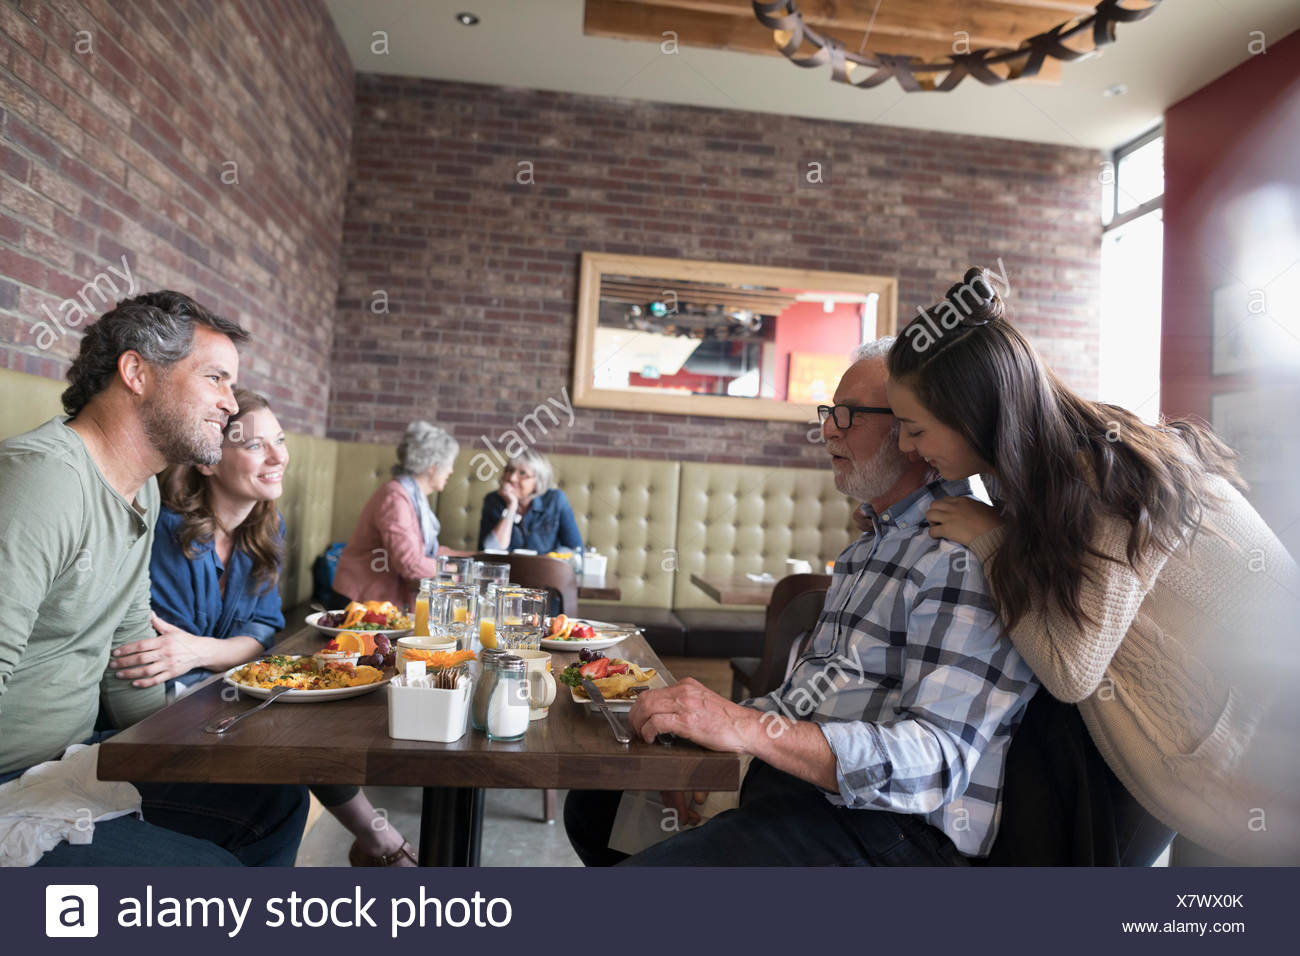 Affectionate granddaughter hugging grandfather, dining at diner table - Stock Image